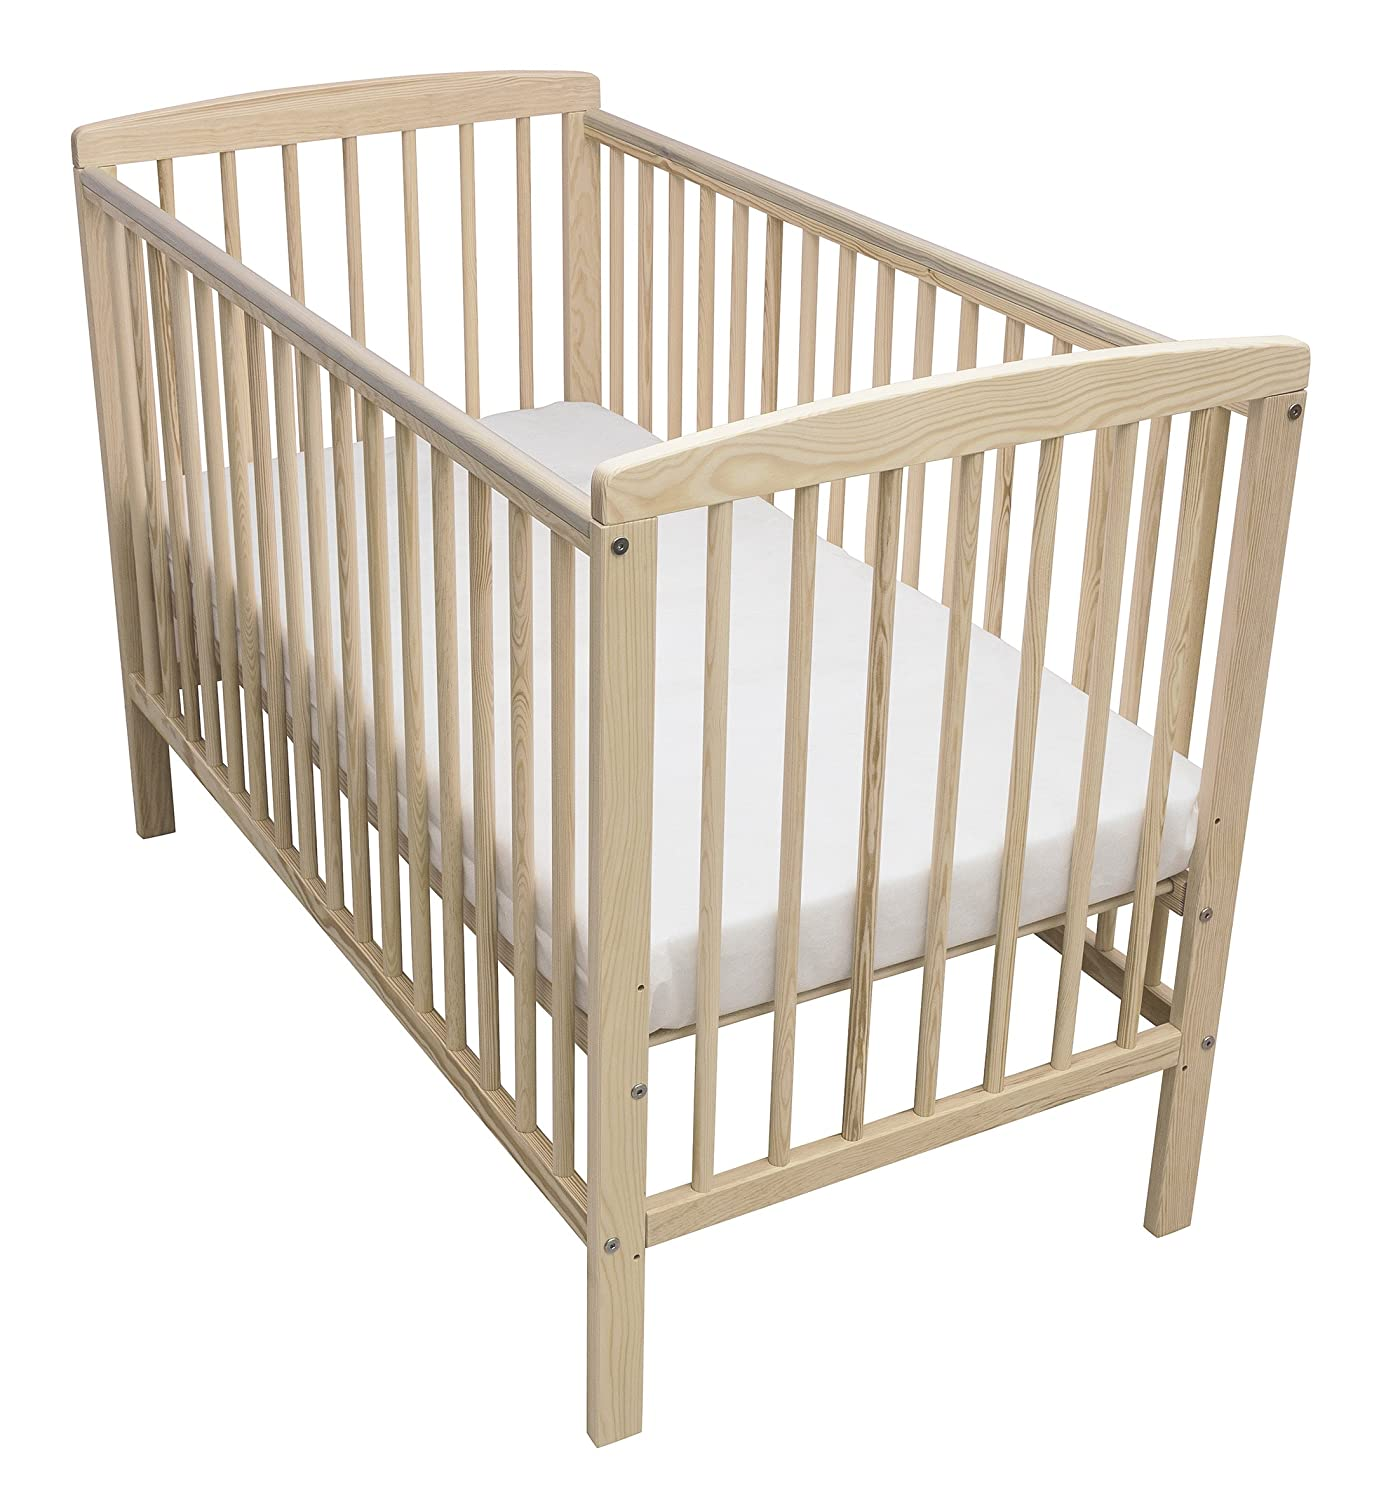 Kinder Valley Sydney Cot (Natural) PIMKCB01